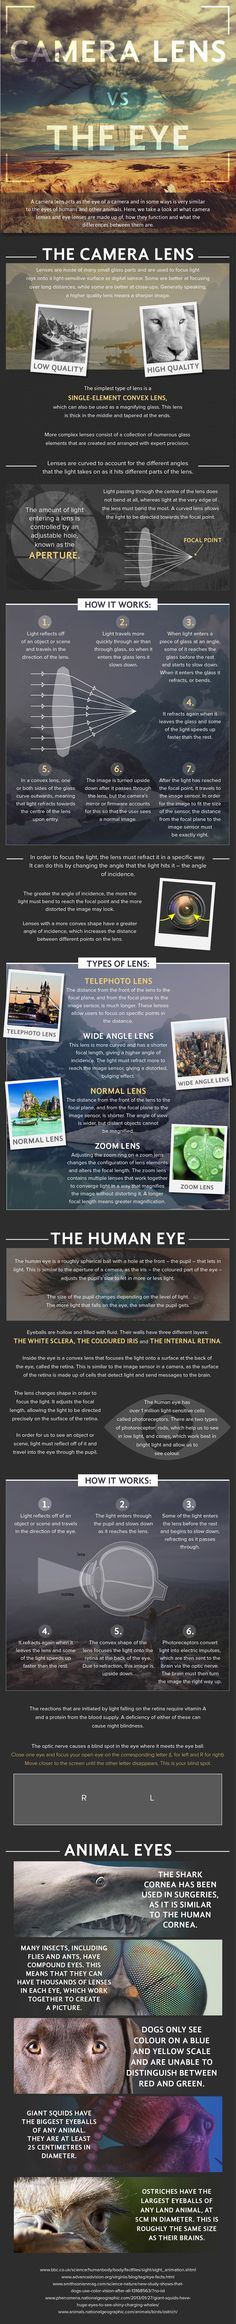 What are the differences between the human eye and the lens on your camera? This cheat sheet compiled by Clifton Cameras makes an in-depth camera lens vs h